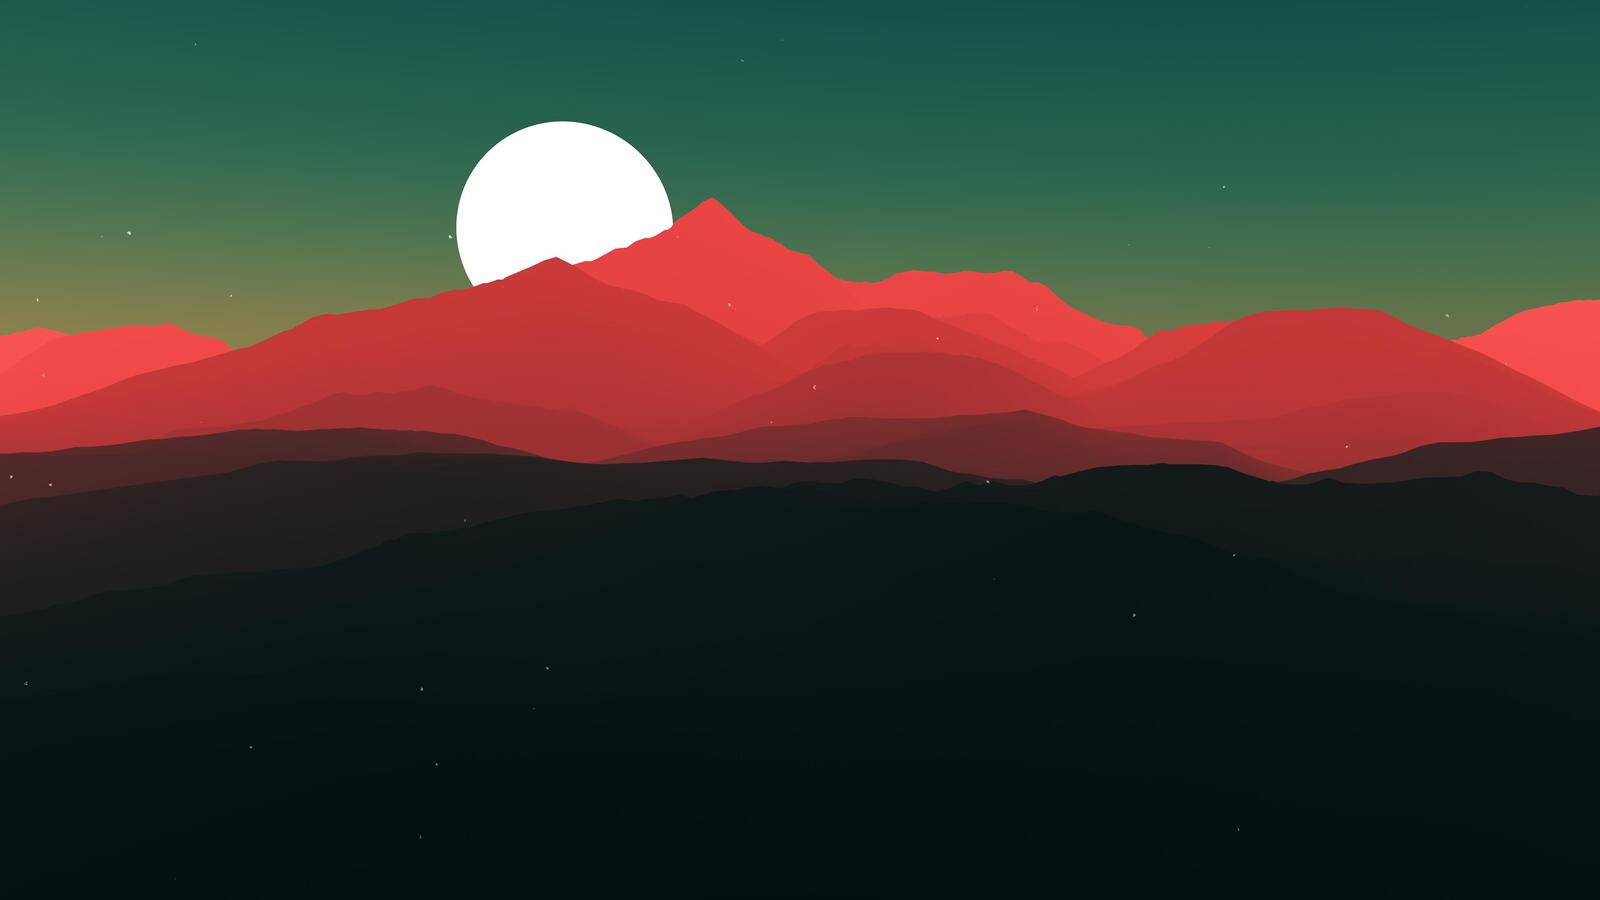 1600x900 minimalist landscape 4k 1600x900 resolution hd 4k